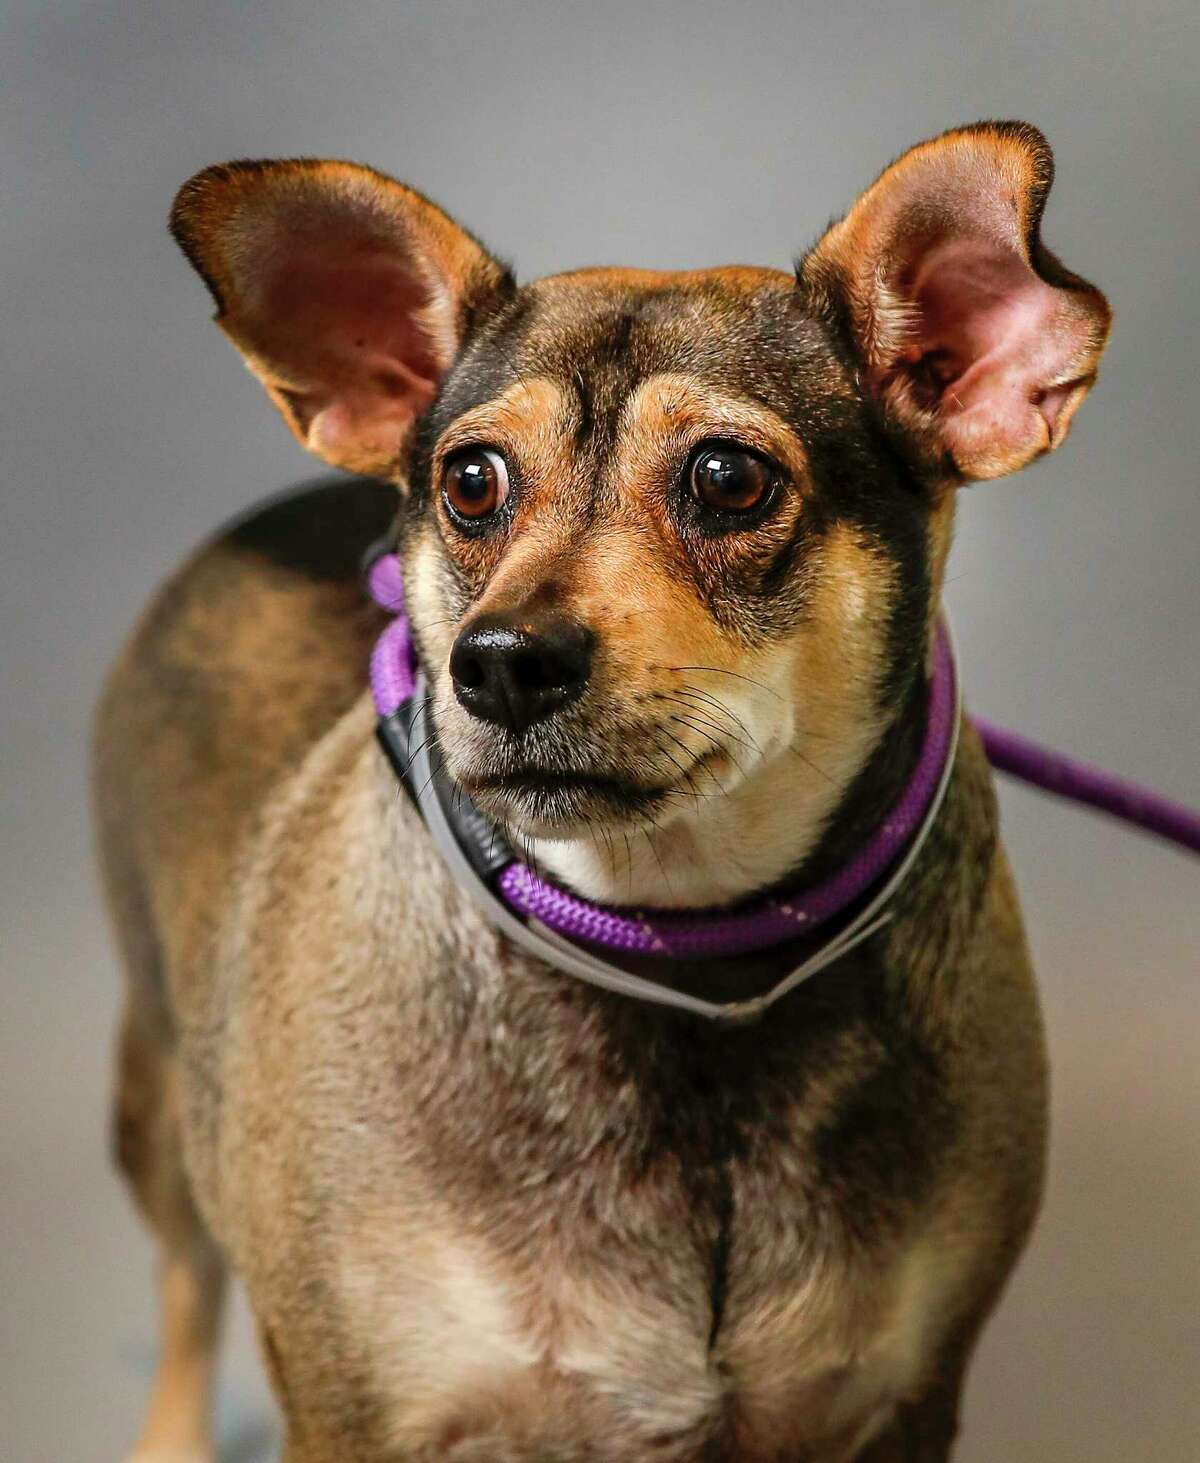 Lexicon is a 5-year-old, female, Austrailian Cattle Dog mix available for adoption at the BARC Animal Shelter, in Houston. (Animal ID: A1642746) Photographed Tuesday, August 6, 2019. Lexicon a.k.a. Lexi strikes an impression at first glance. She's a beauty, even if she's a bit of a rolly-polly. She's friendly, has great energy, and has a weakness for treats.